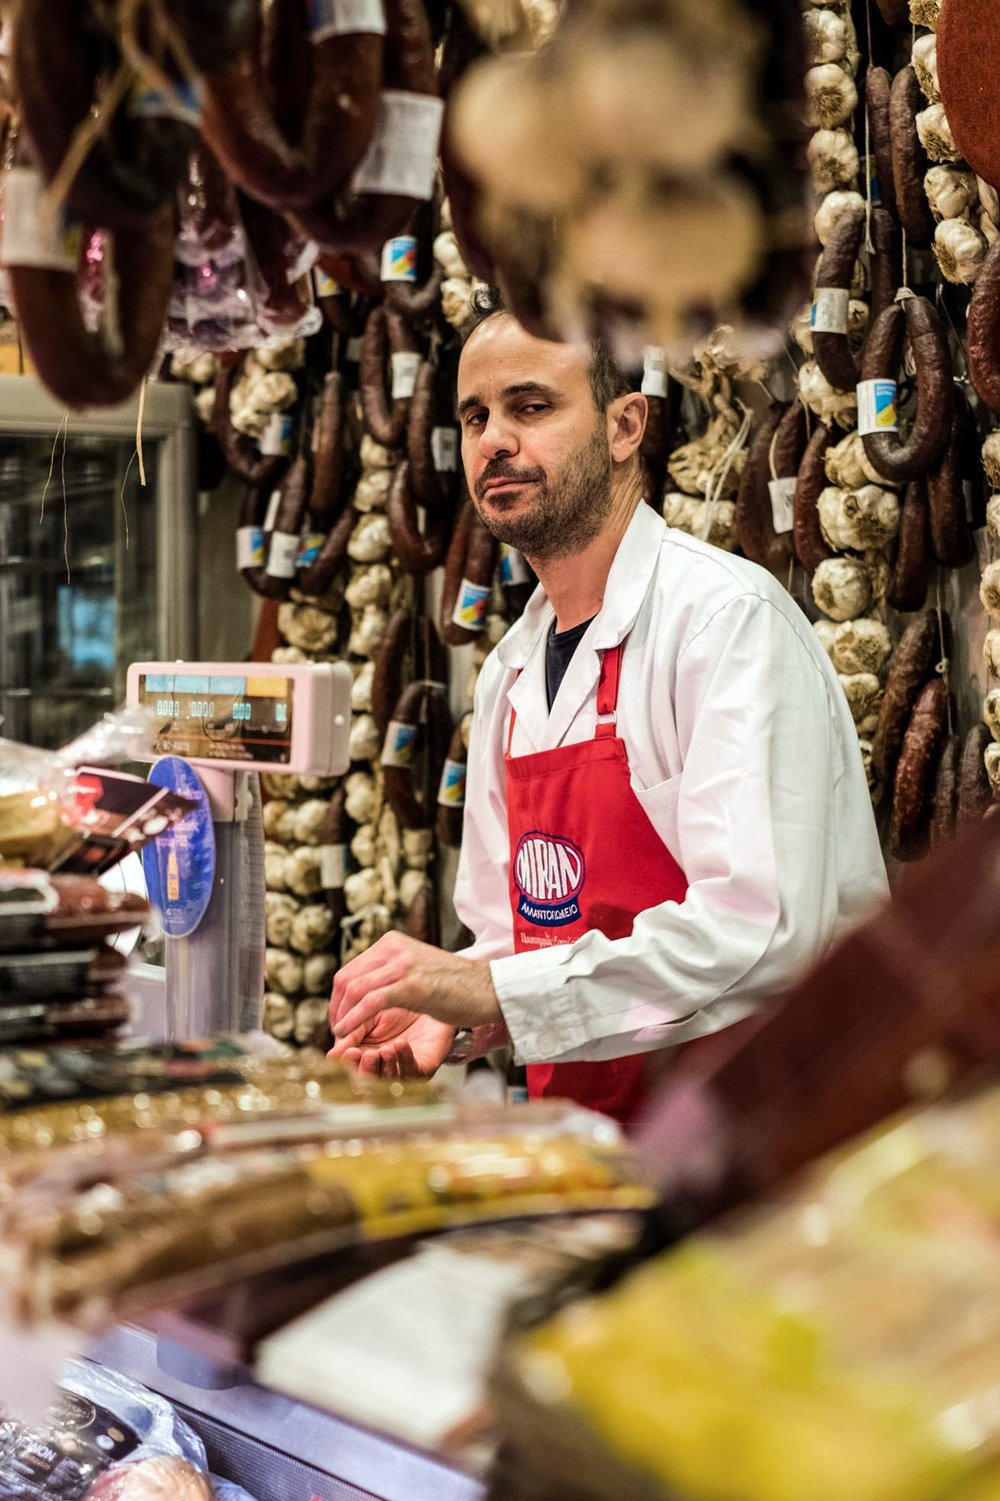 126-201806-GRECE-COMPTOIR-ATH-BALADE-CULINAIRE©AUGUSTIN_LE-GALL_HAYTHAM-PICTURES-DSCF6599.jpg